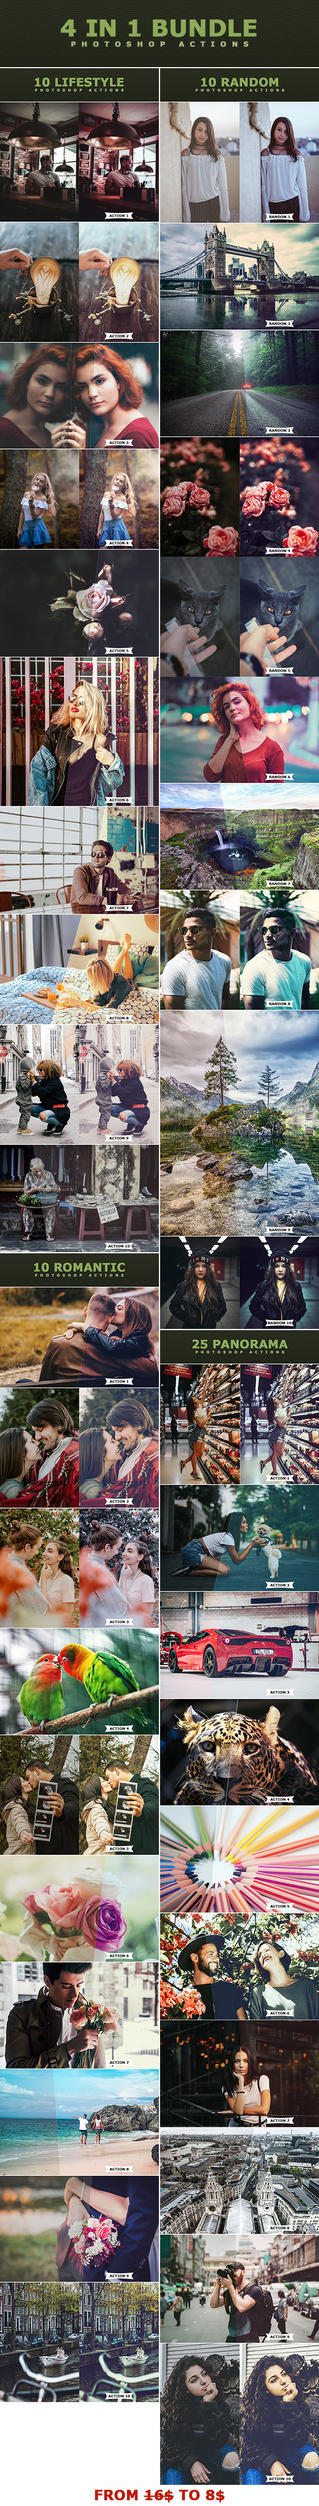 4 IN 1 Photoshop Actions Bundle by ViktorGjokaj